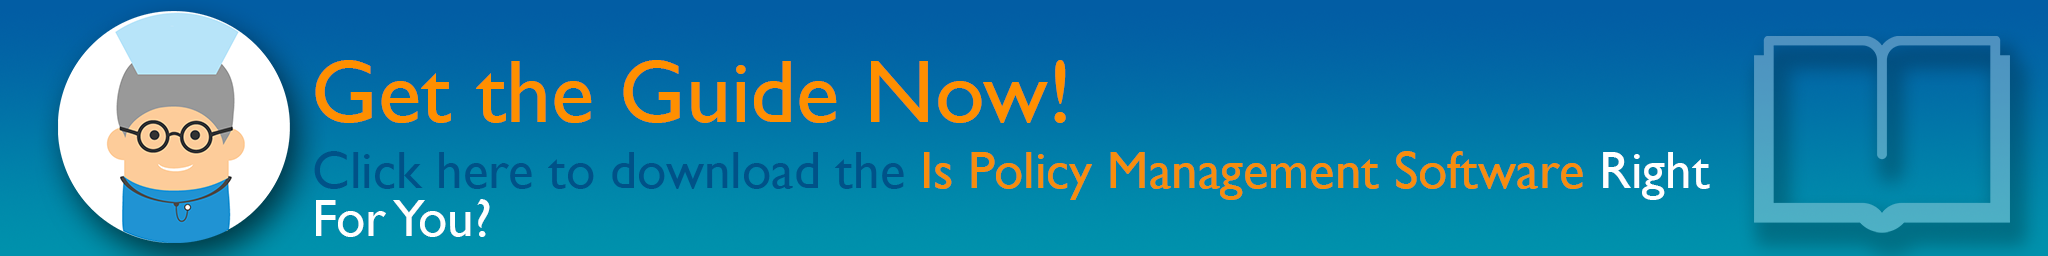 Is Policy Management Software Right for You